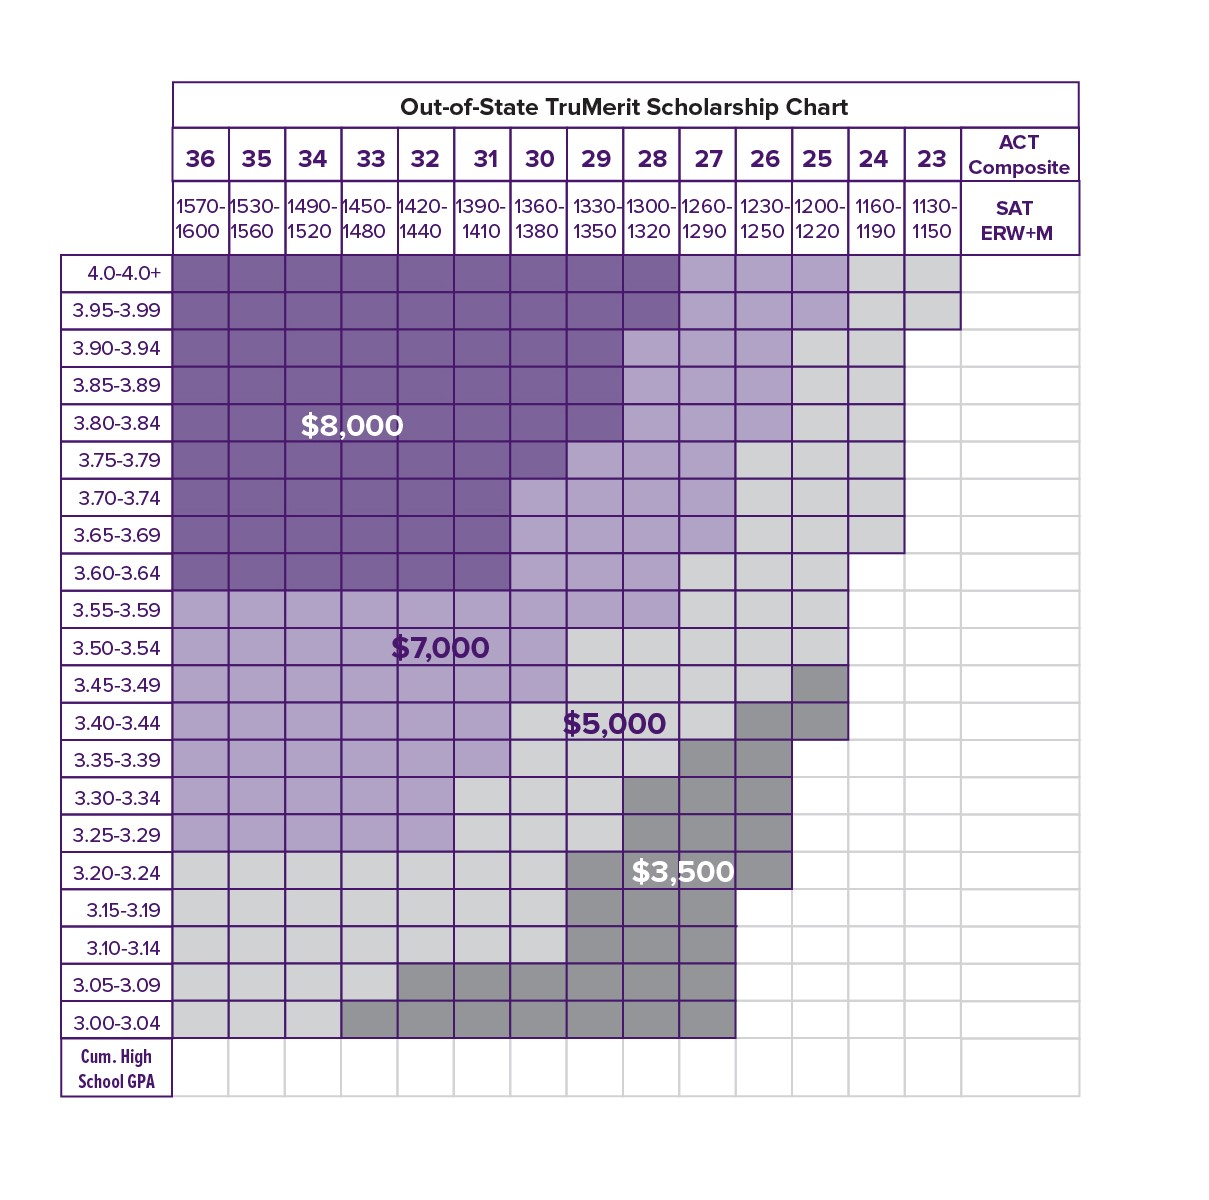 TruMerit Scholarship Chart for out-of-state students